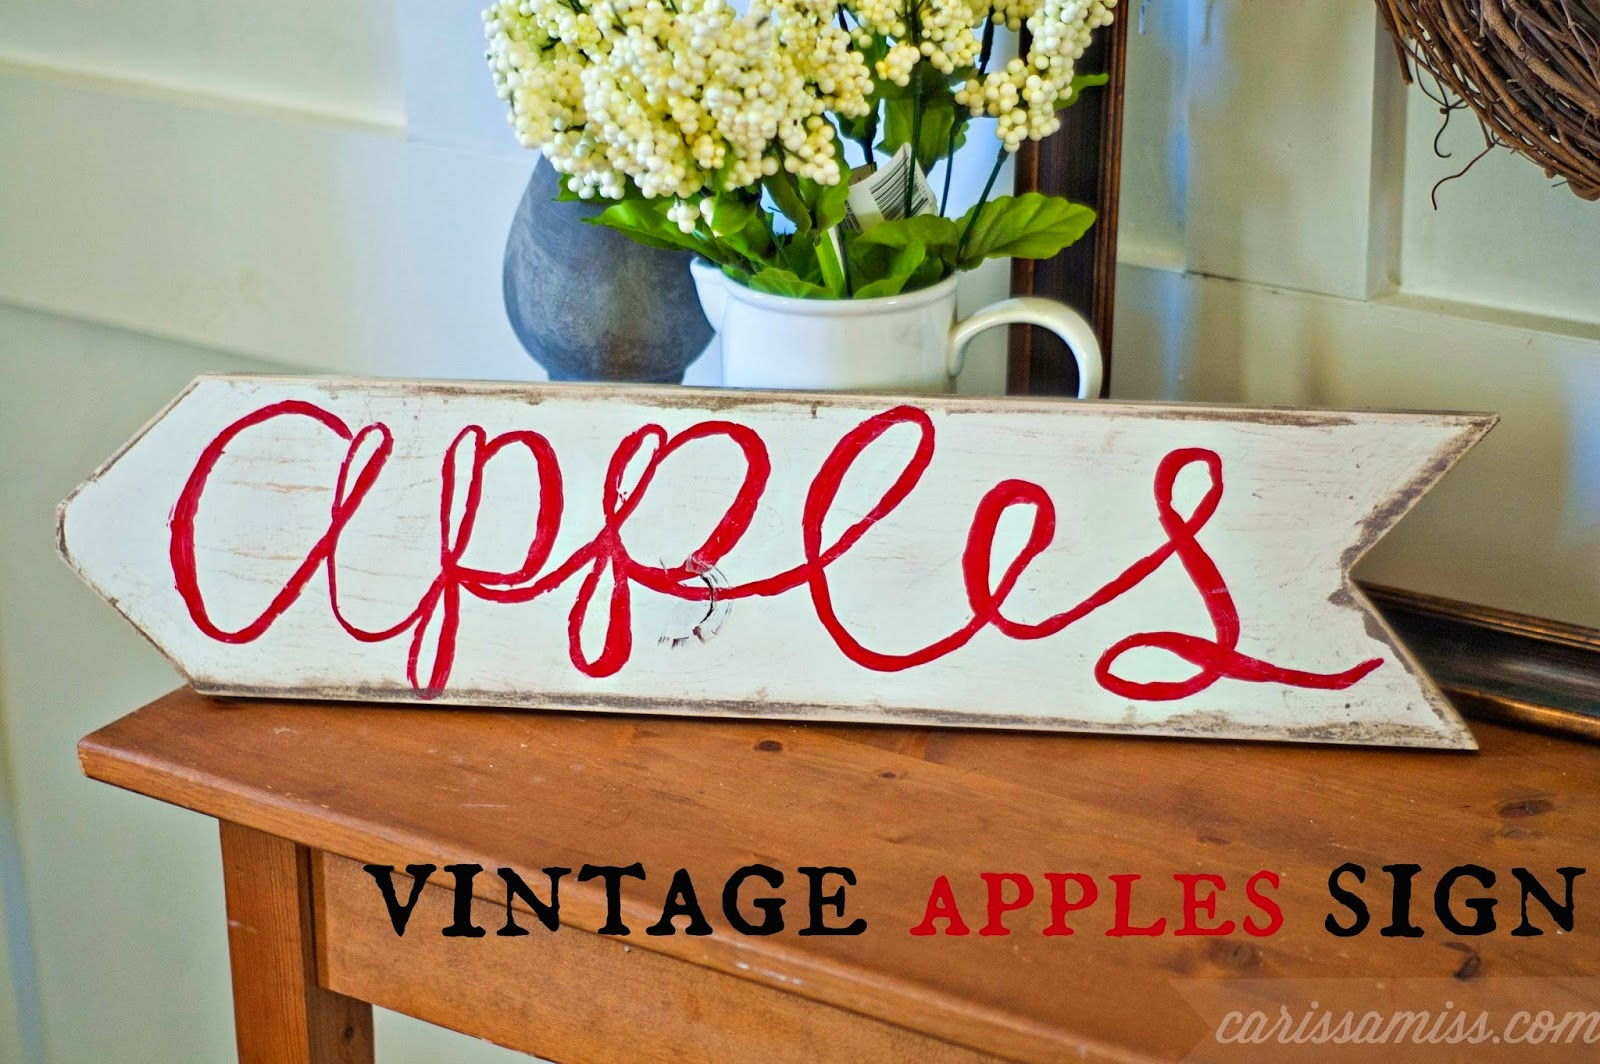 Carissa Miss: Vintage Apple Sign